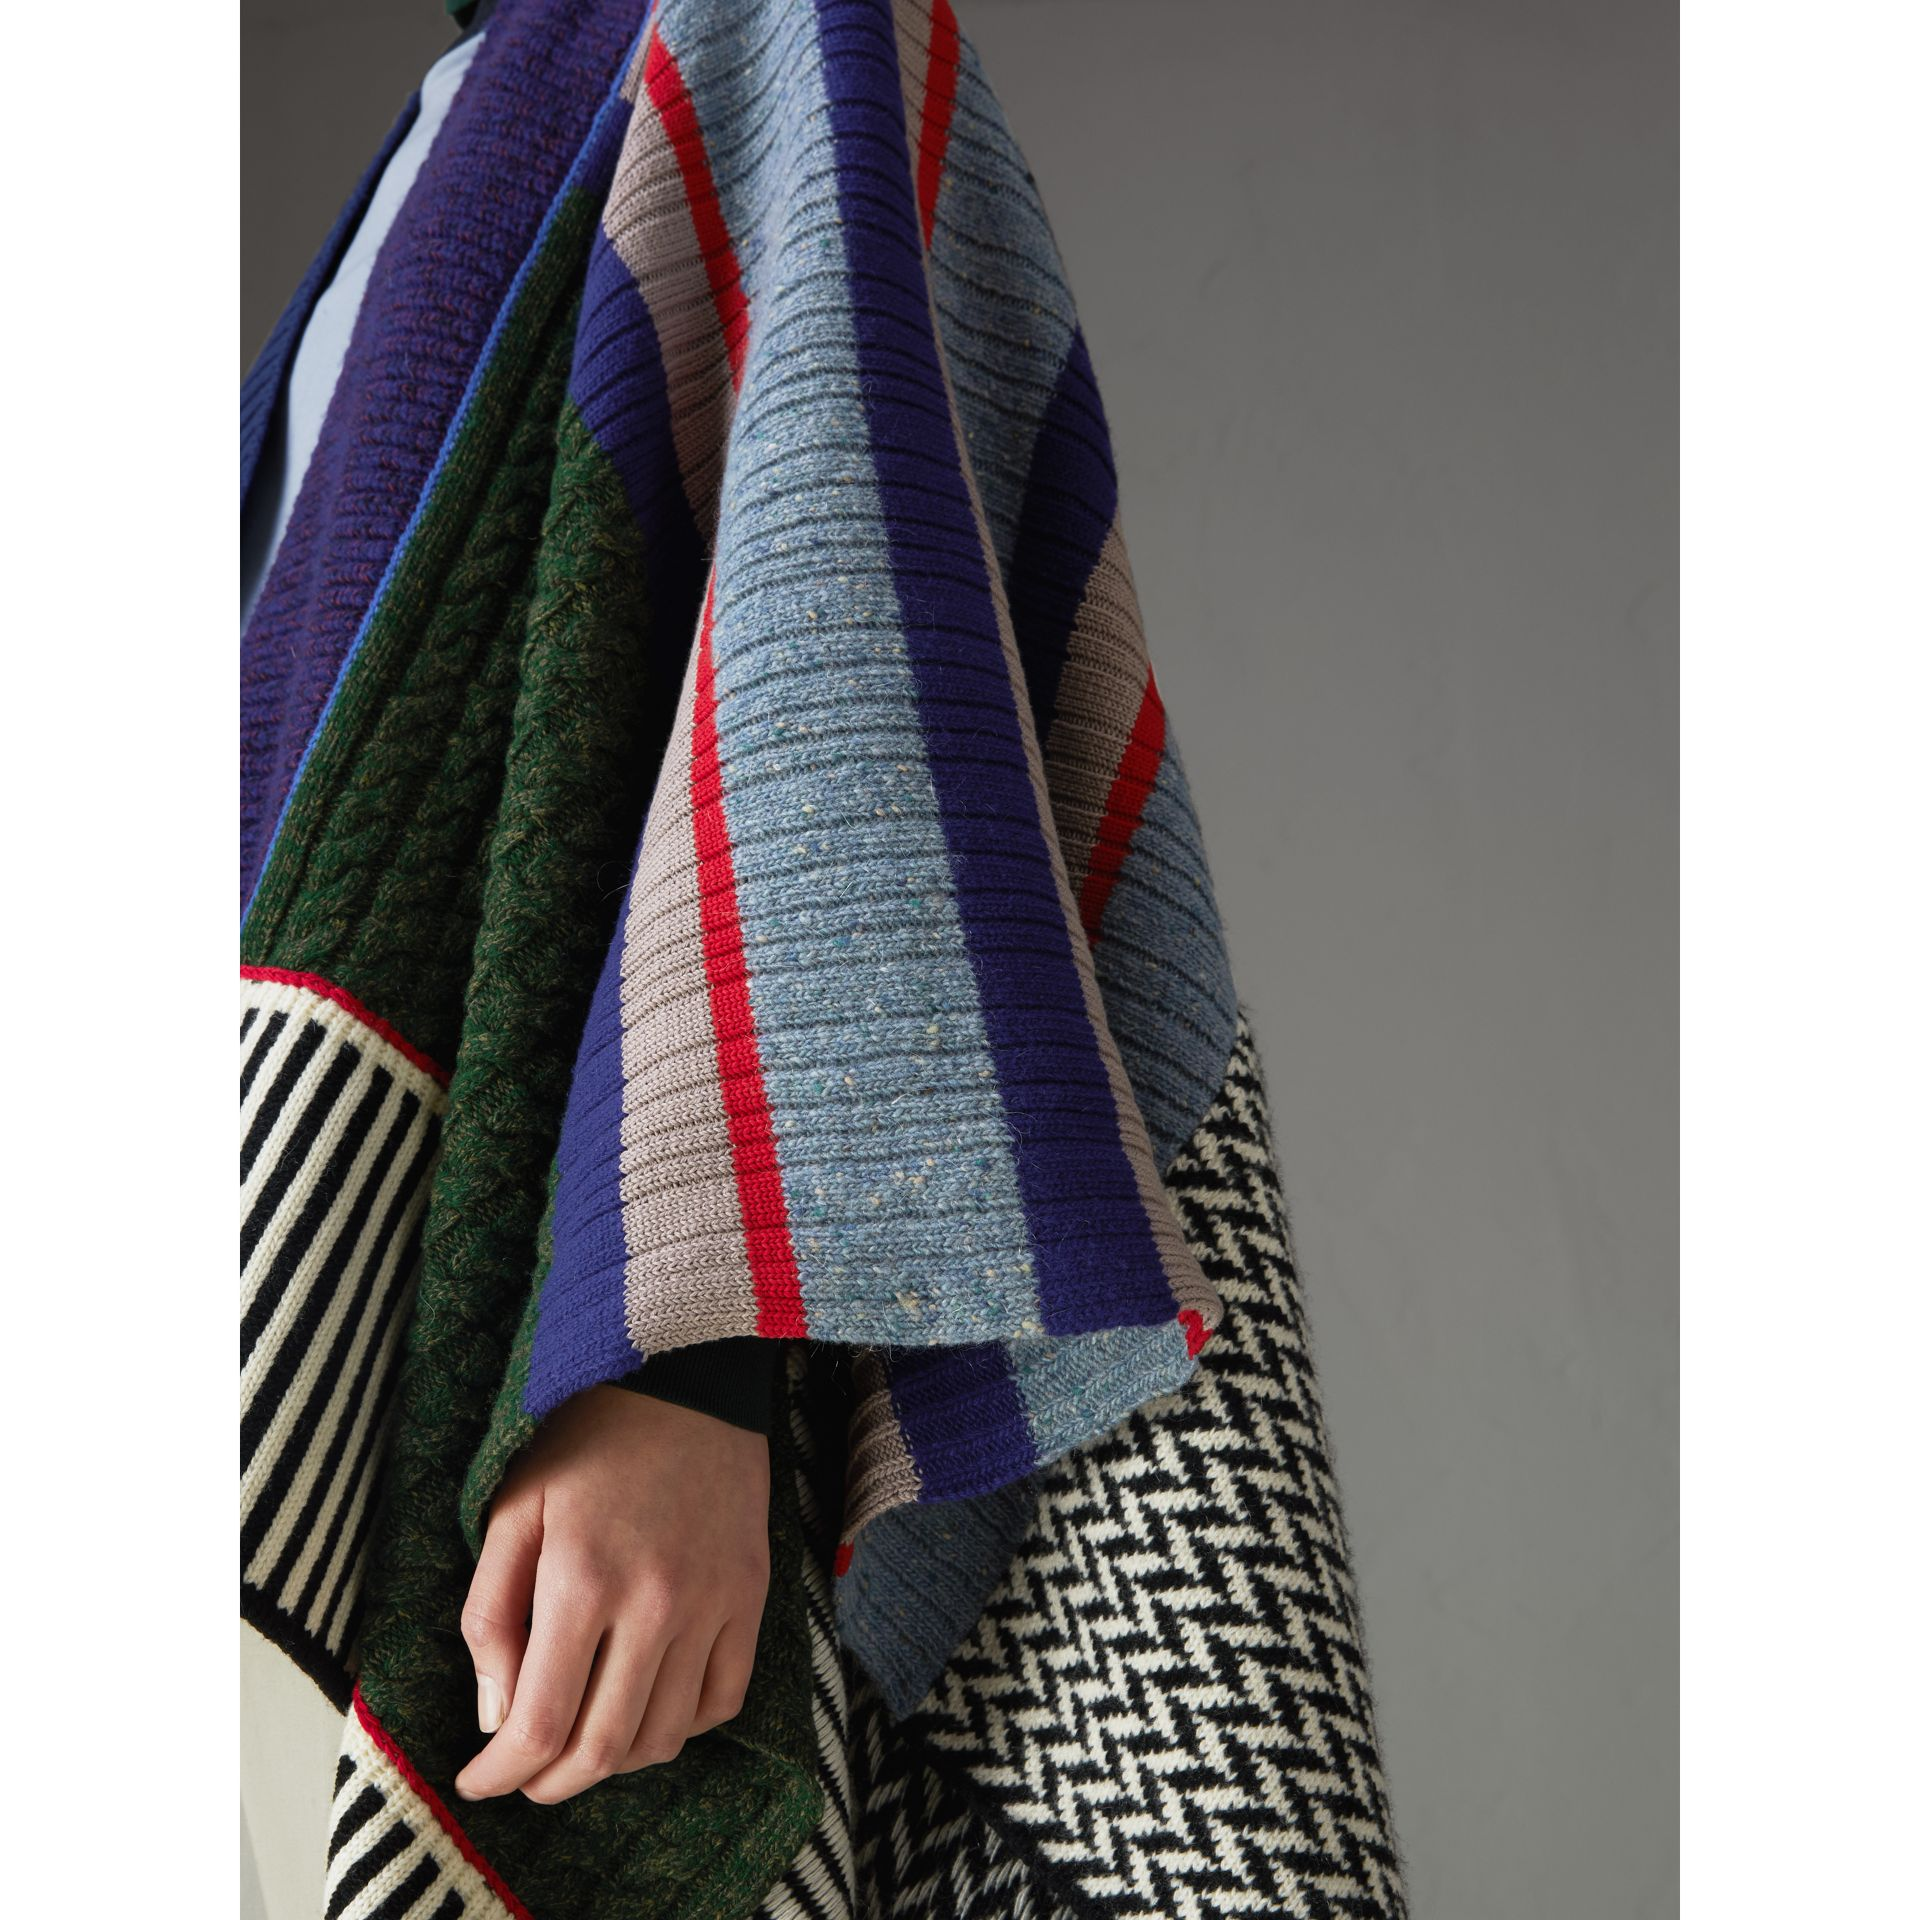 Wool Cashmere Blend Patchwork Poncho in Multicolour - Women | Burberry Hong Kong - gallery image 1